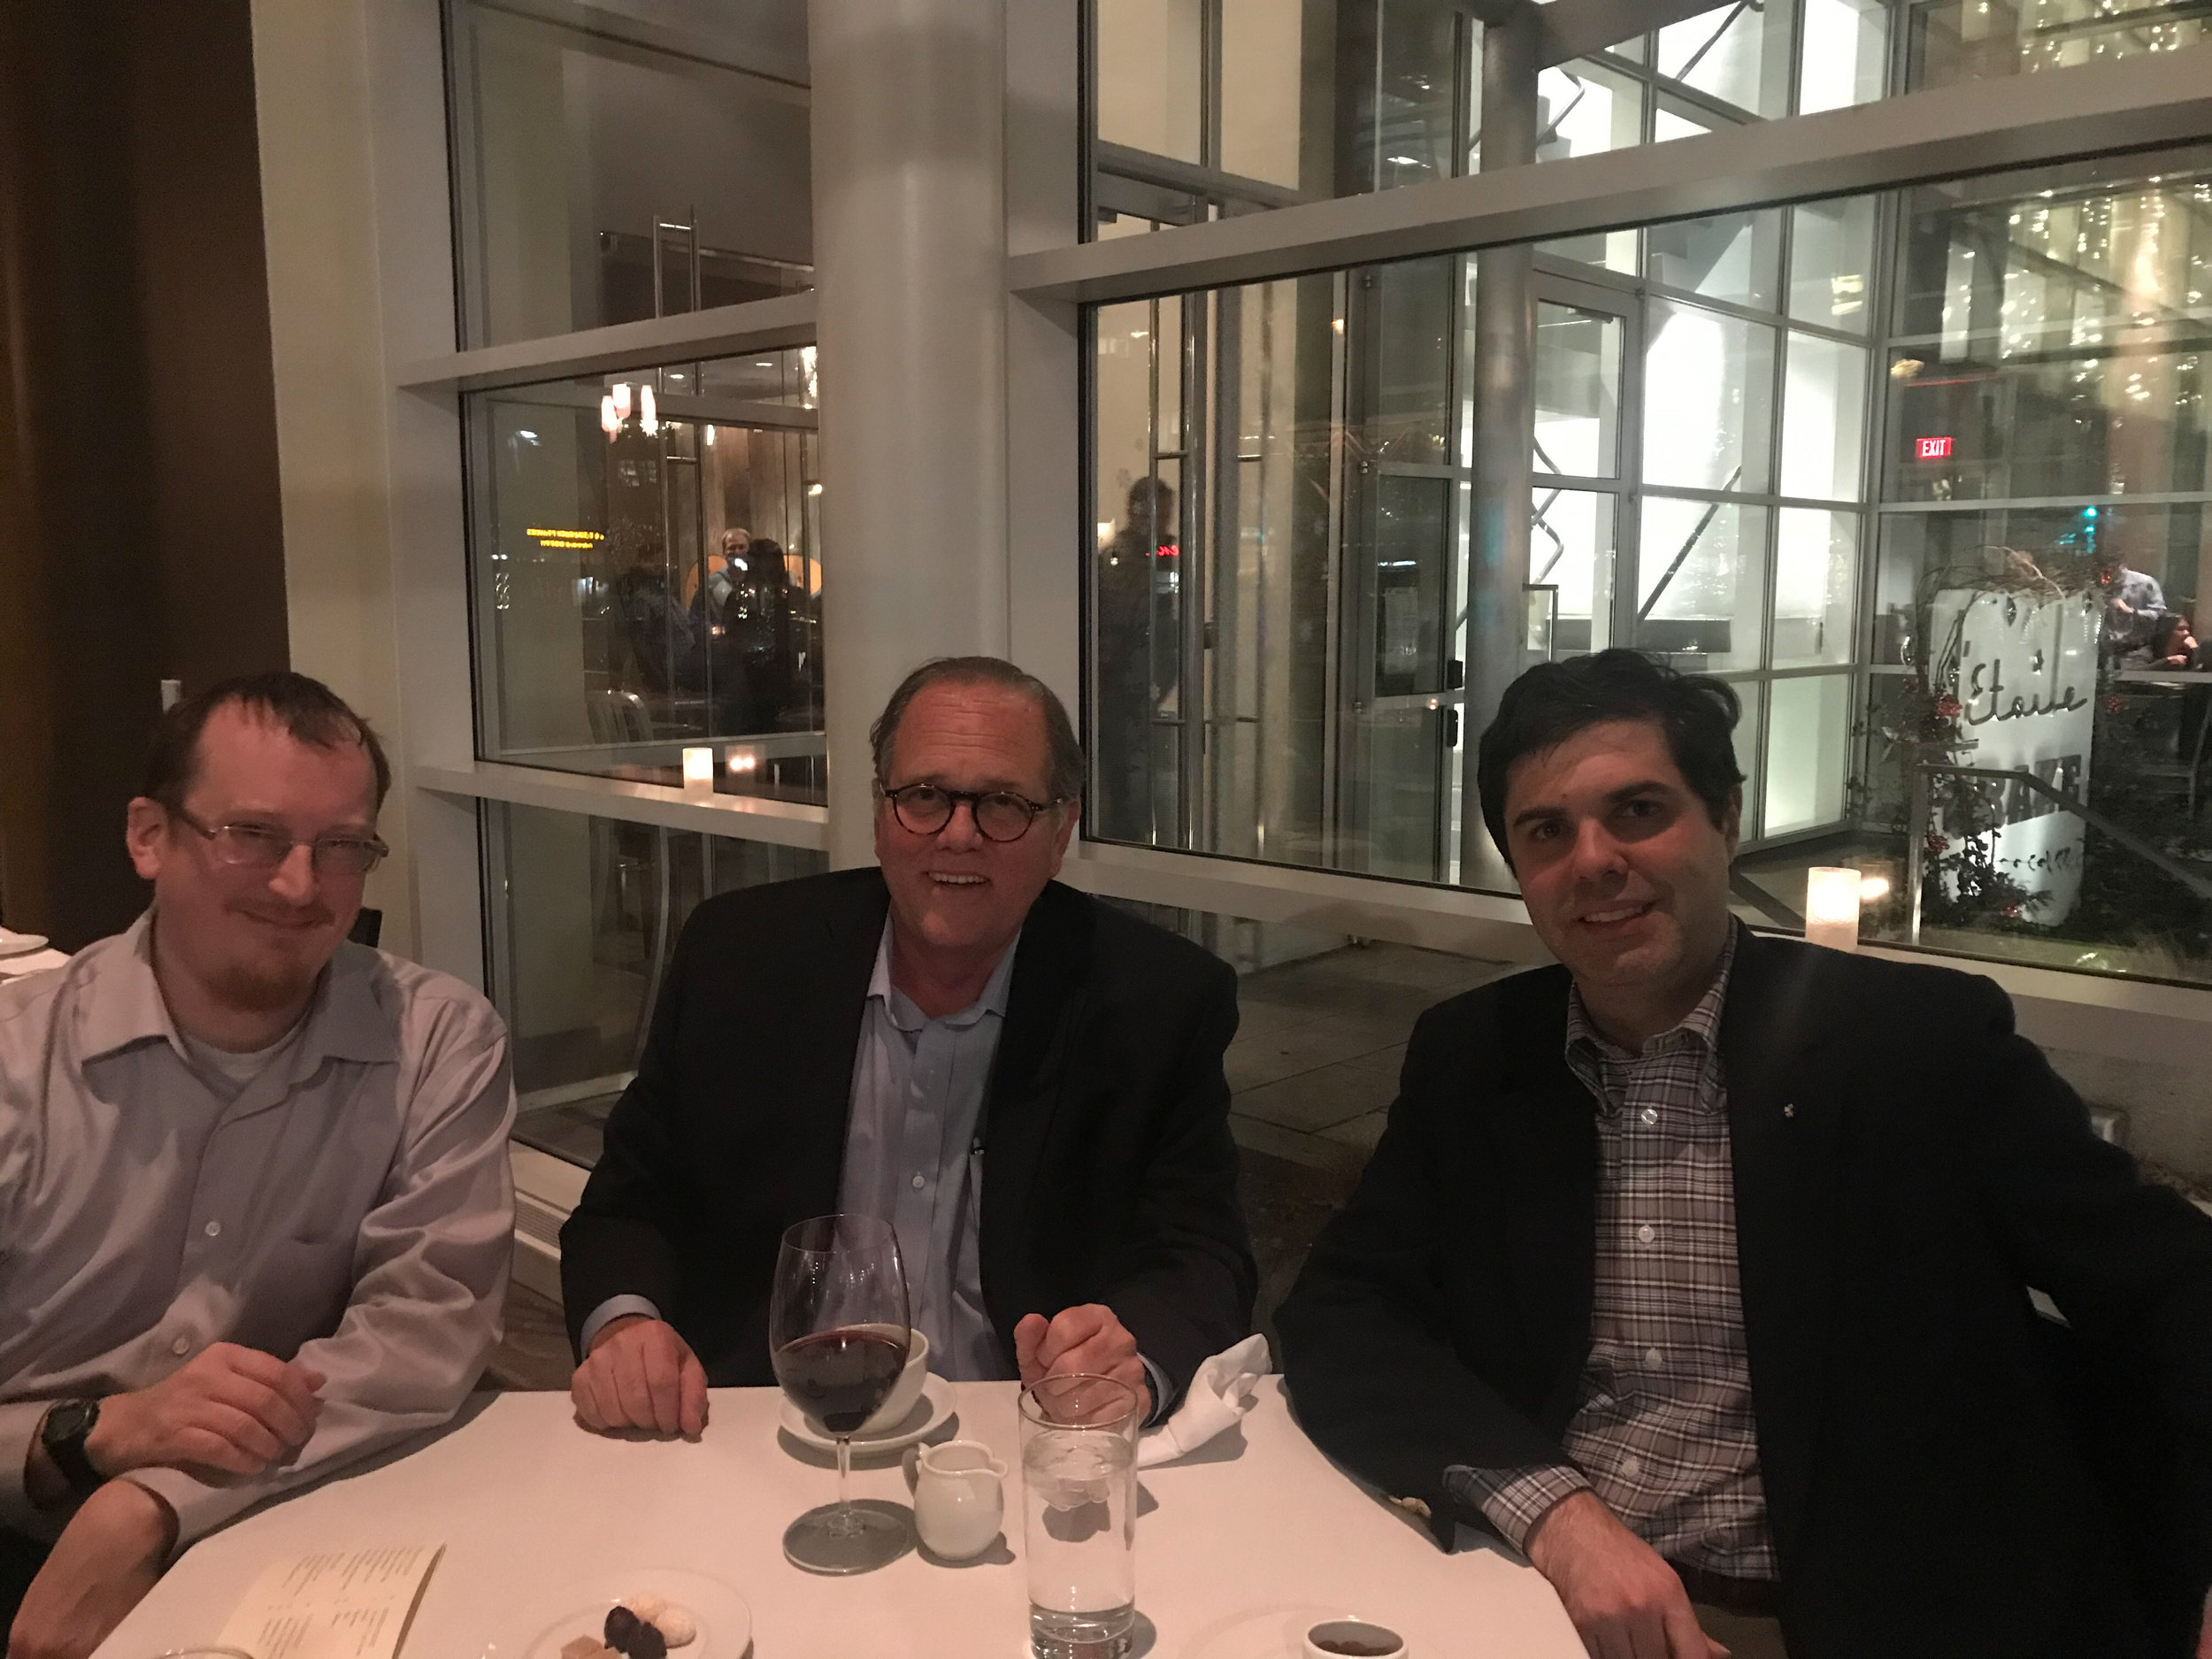 Kevin, Ethan, and Matthew enjoying dinner while on business in Madison, WI, this week